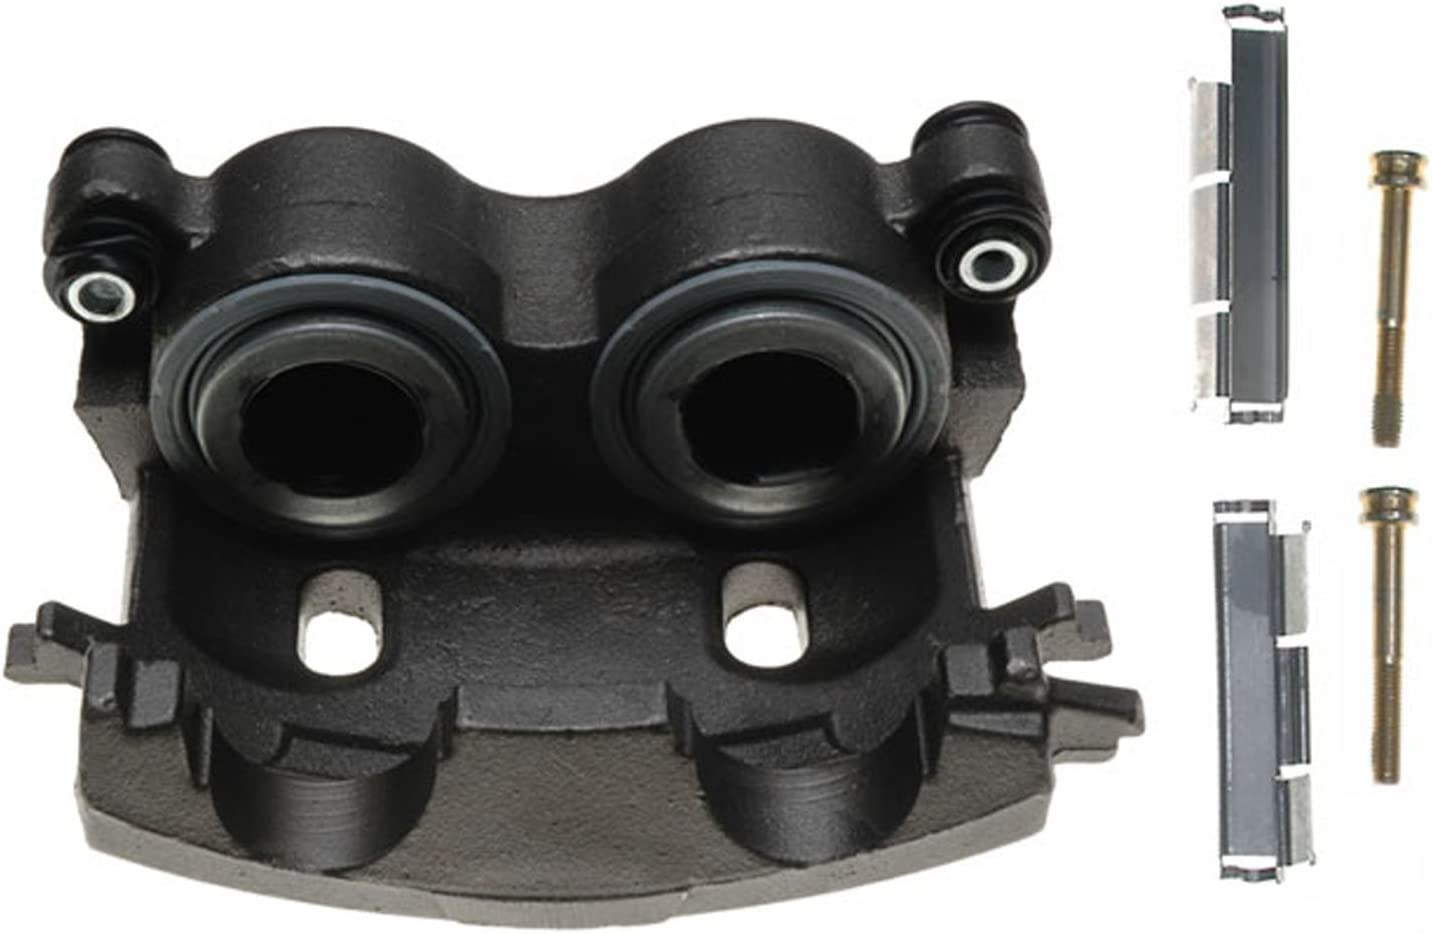 ACDelco 18FR1809 Professional Front Driver Side Disc Brake Caliper Assembly without Pads Remanufactured Friction Ready Non-Coated